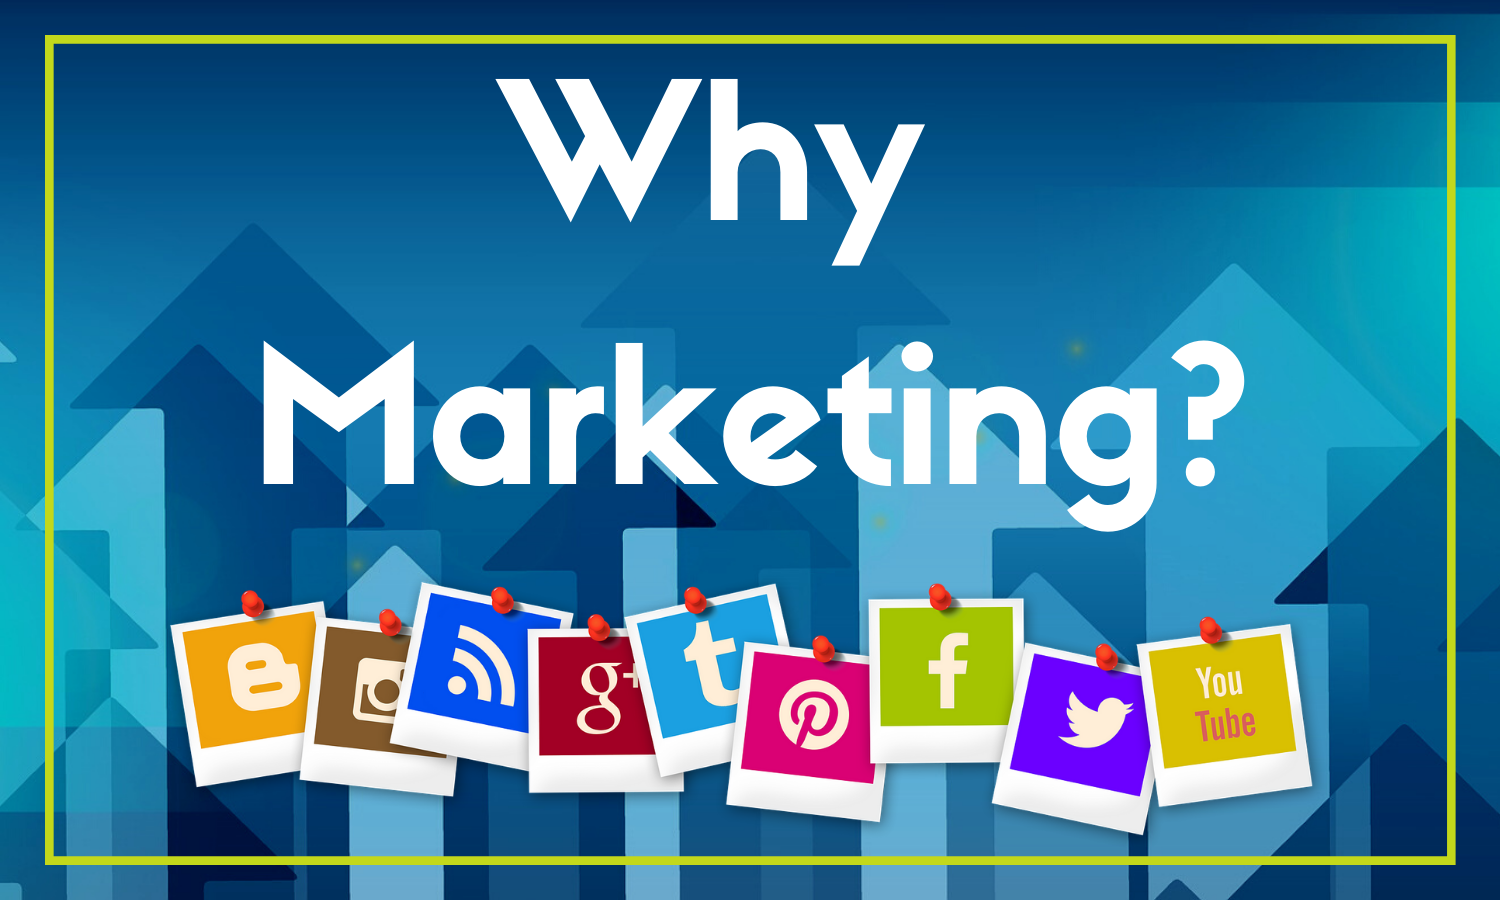 why is marketing important for business?